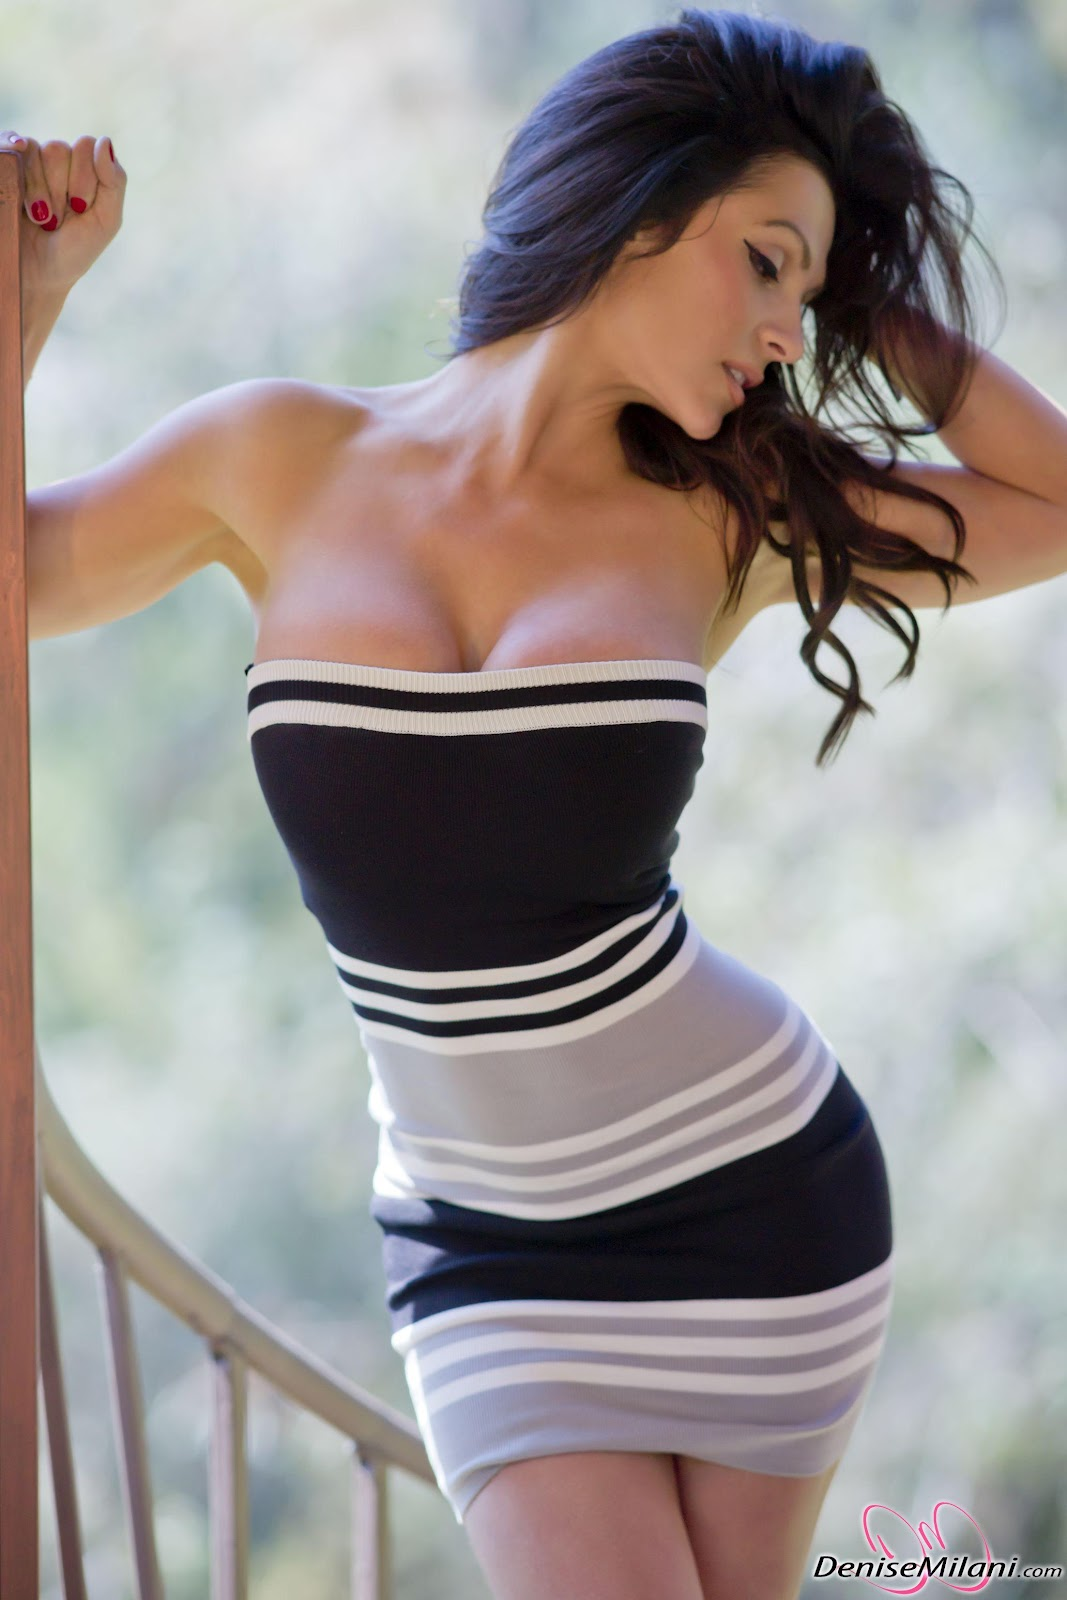 denise milani in a dress - photo #14